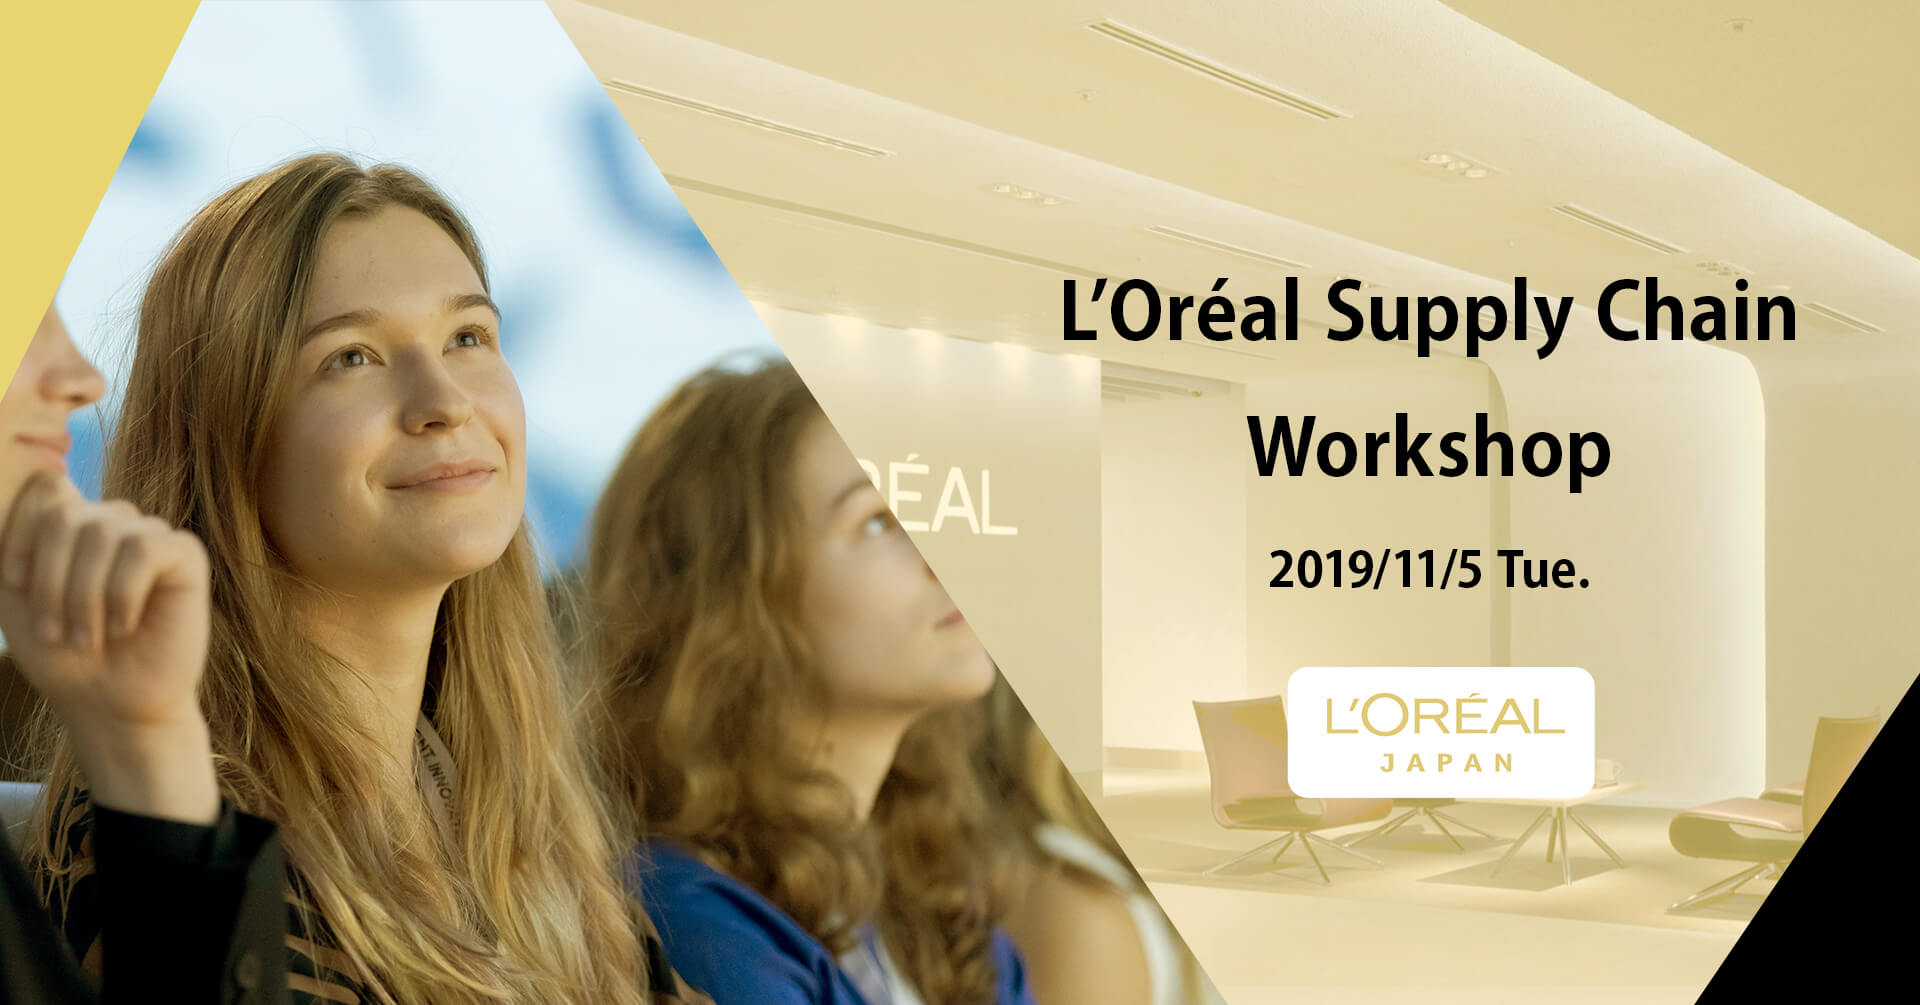 Beauty Tech Companyと考える物流の未来  L'Oréal Supply Chain Workshop開催